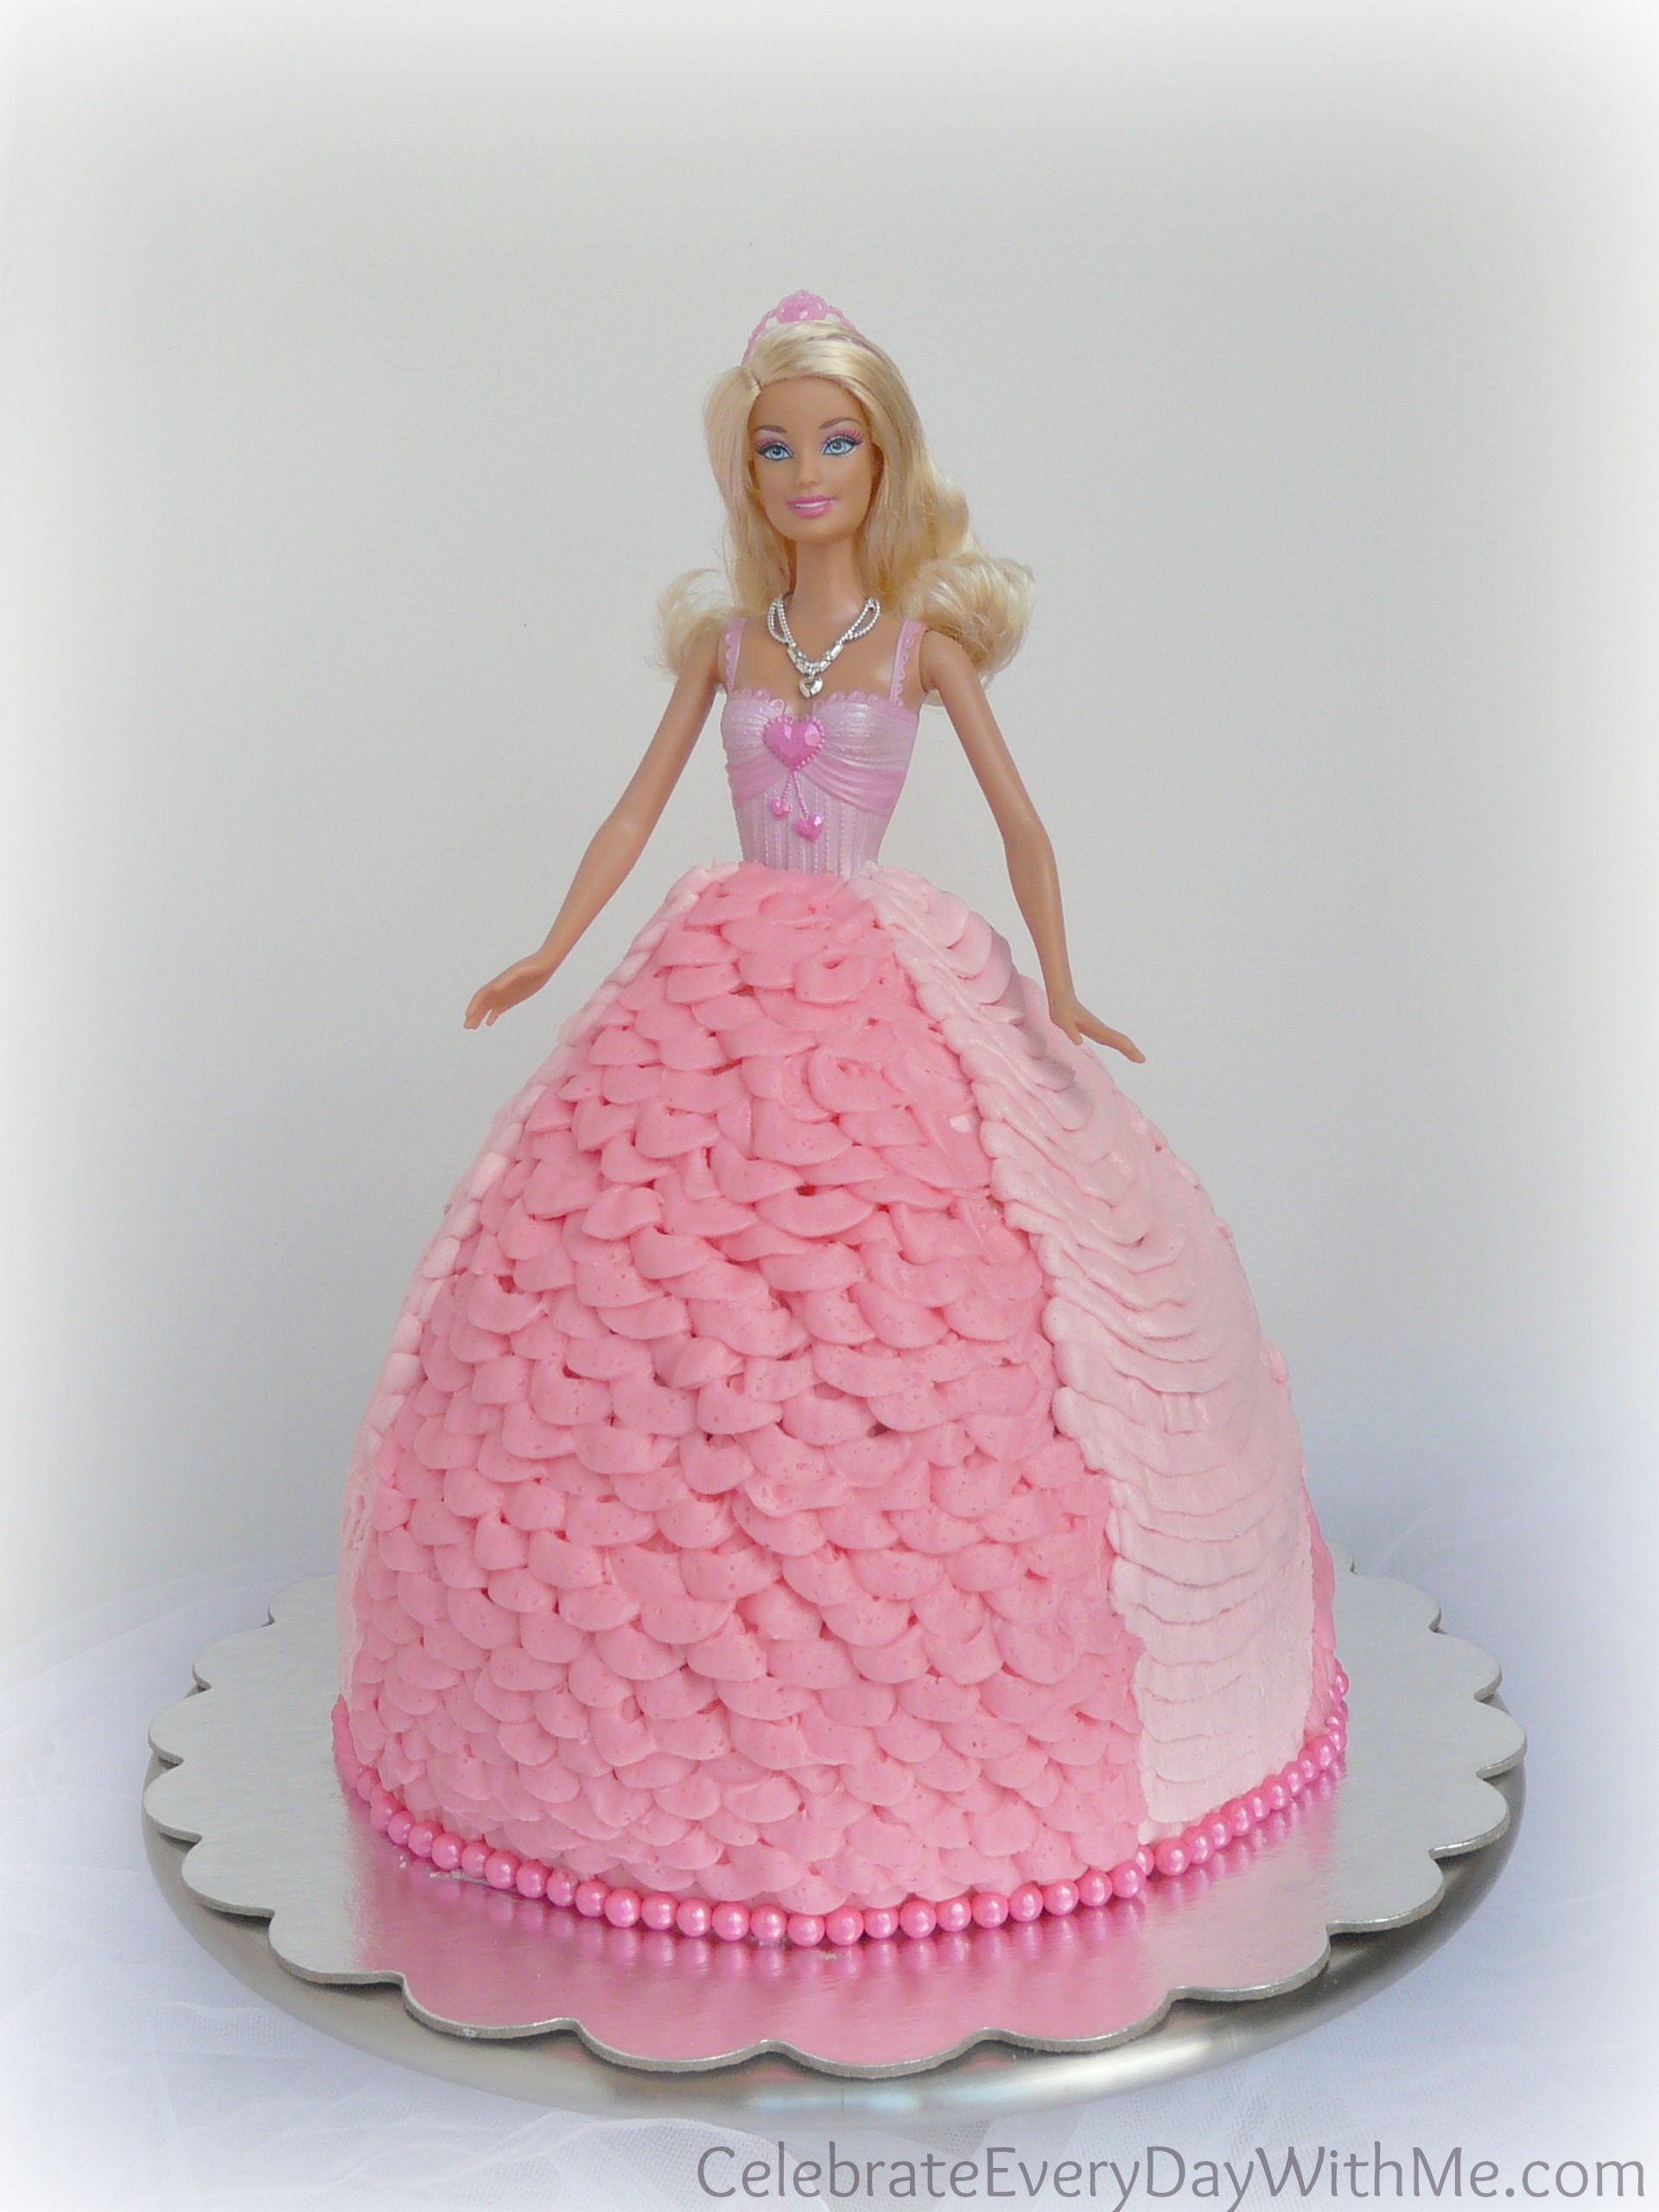 How To Make A Barbie Doll Cake Celebrate Every Day With Me